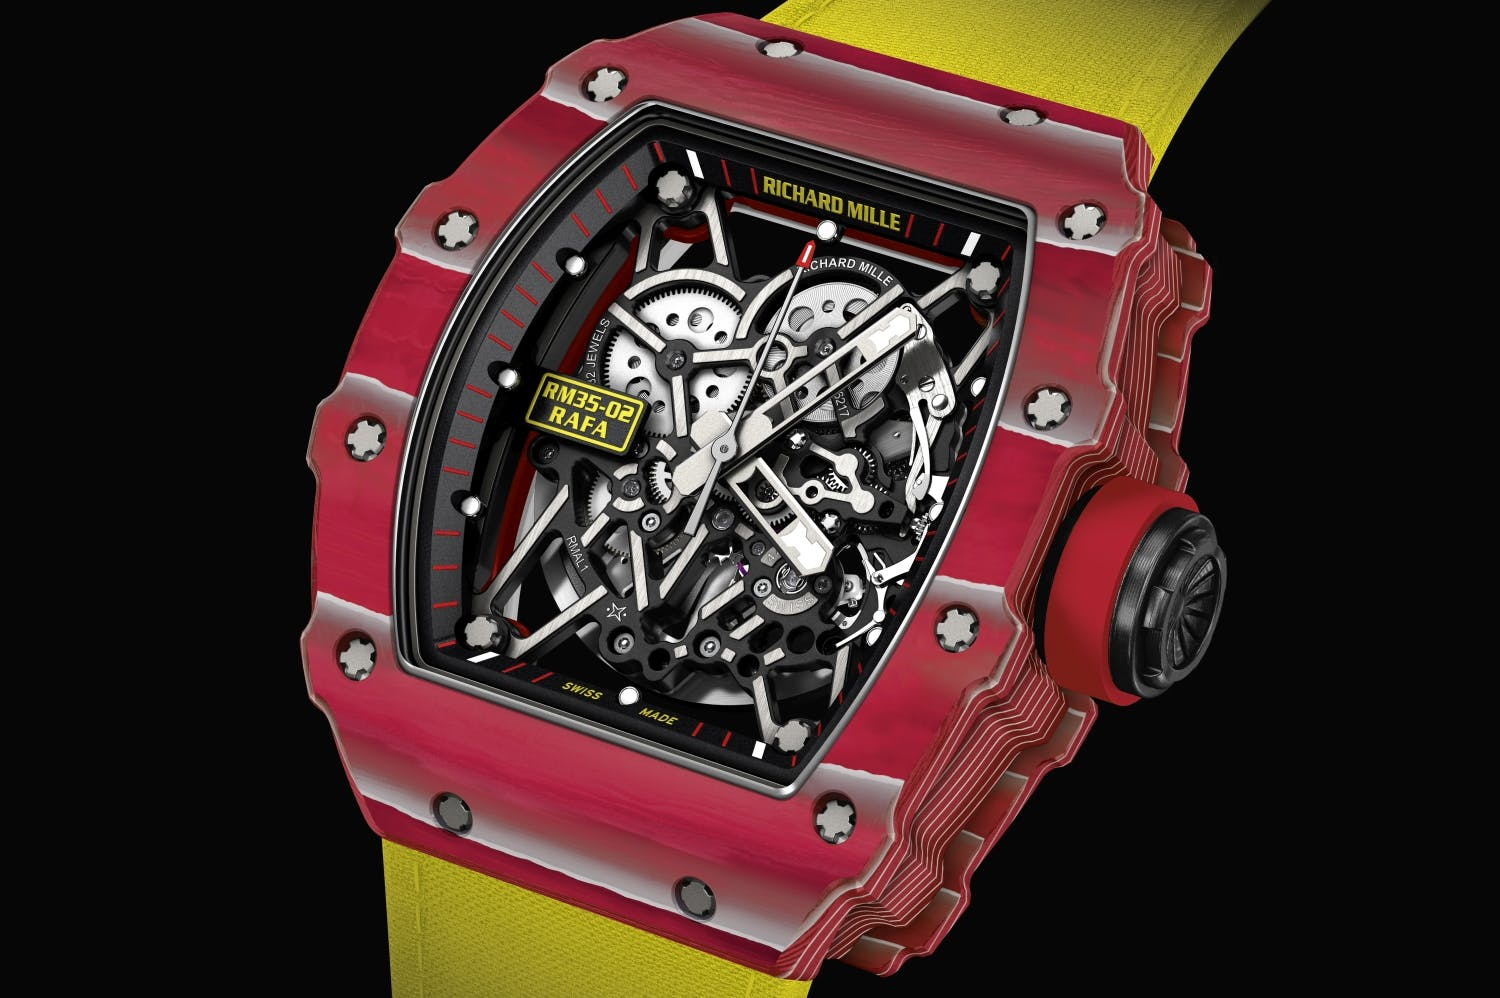 Richard Mille RM 35-02 – resistente a los golpes hasta 5000 G